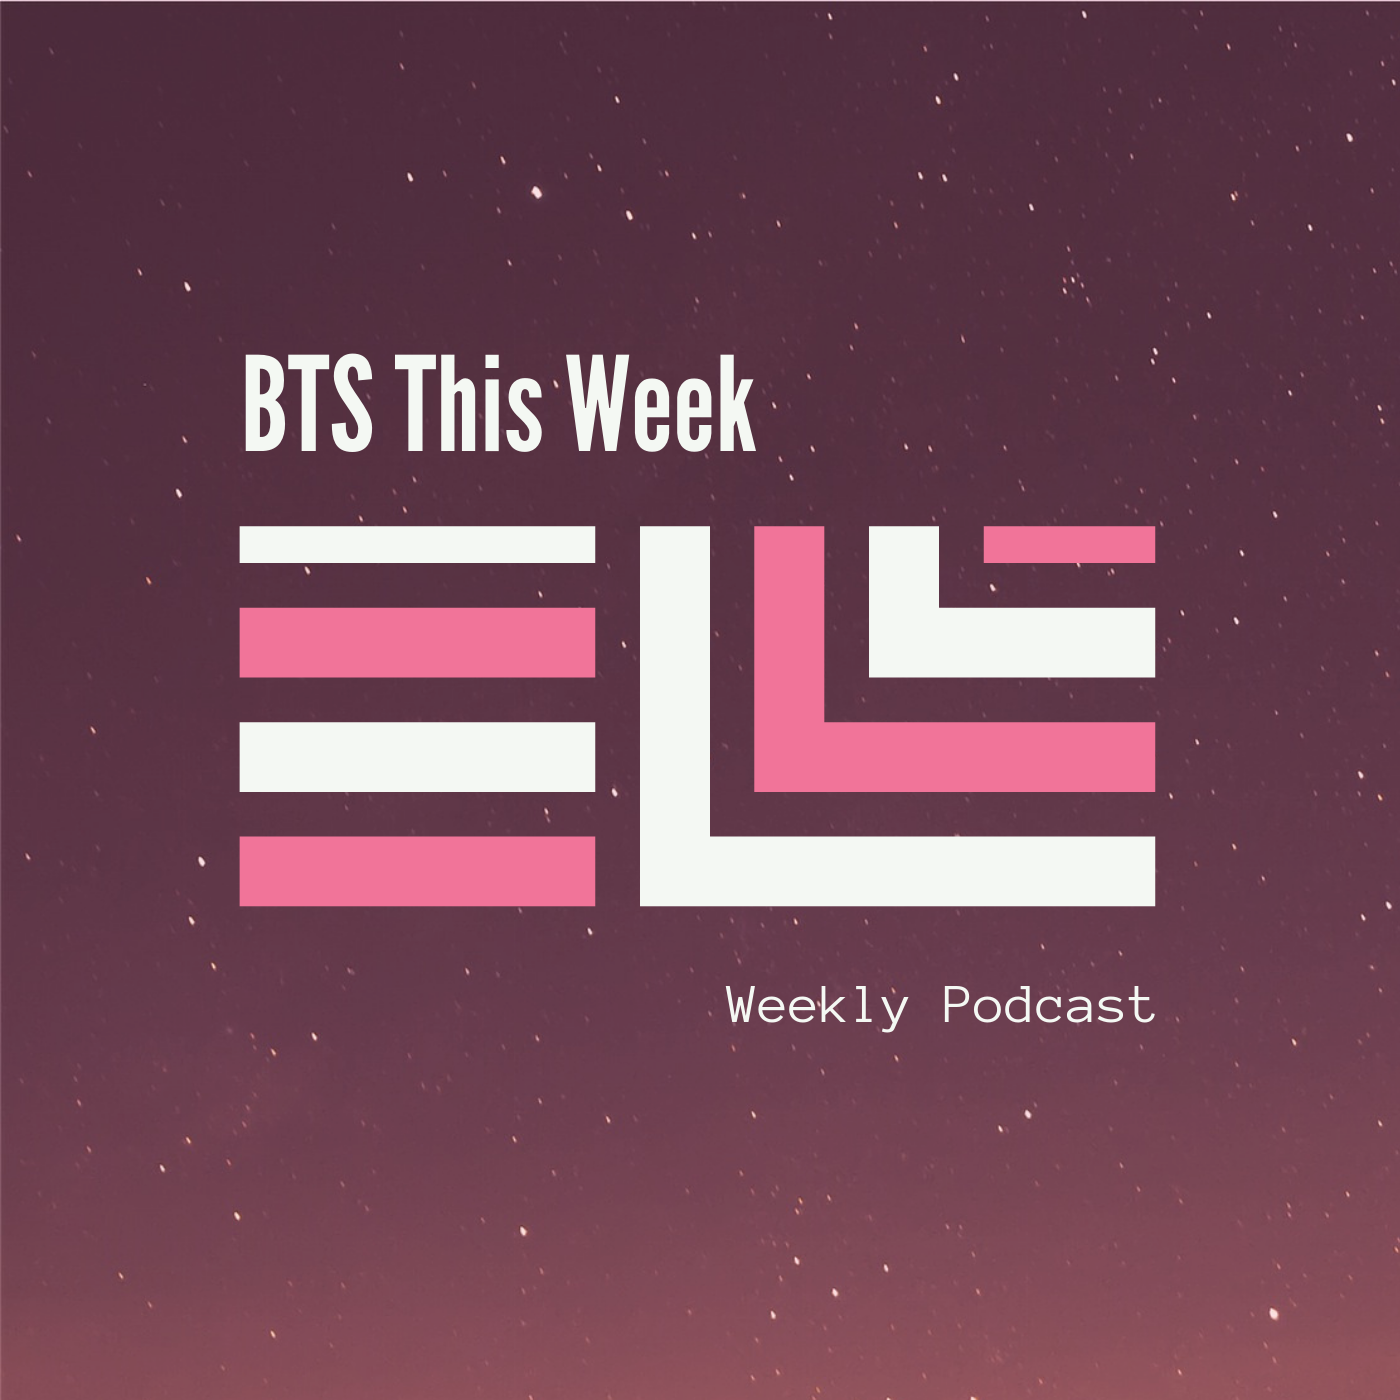 BTS This Week | Listen via Stitcher for Podcasts